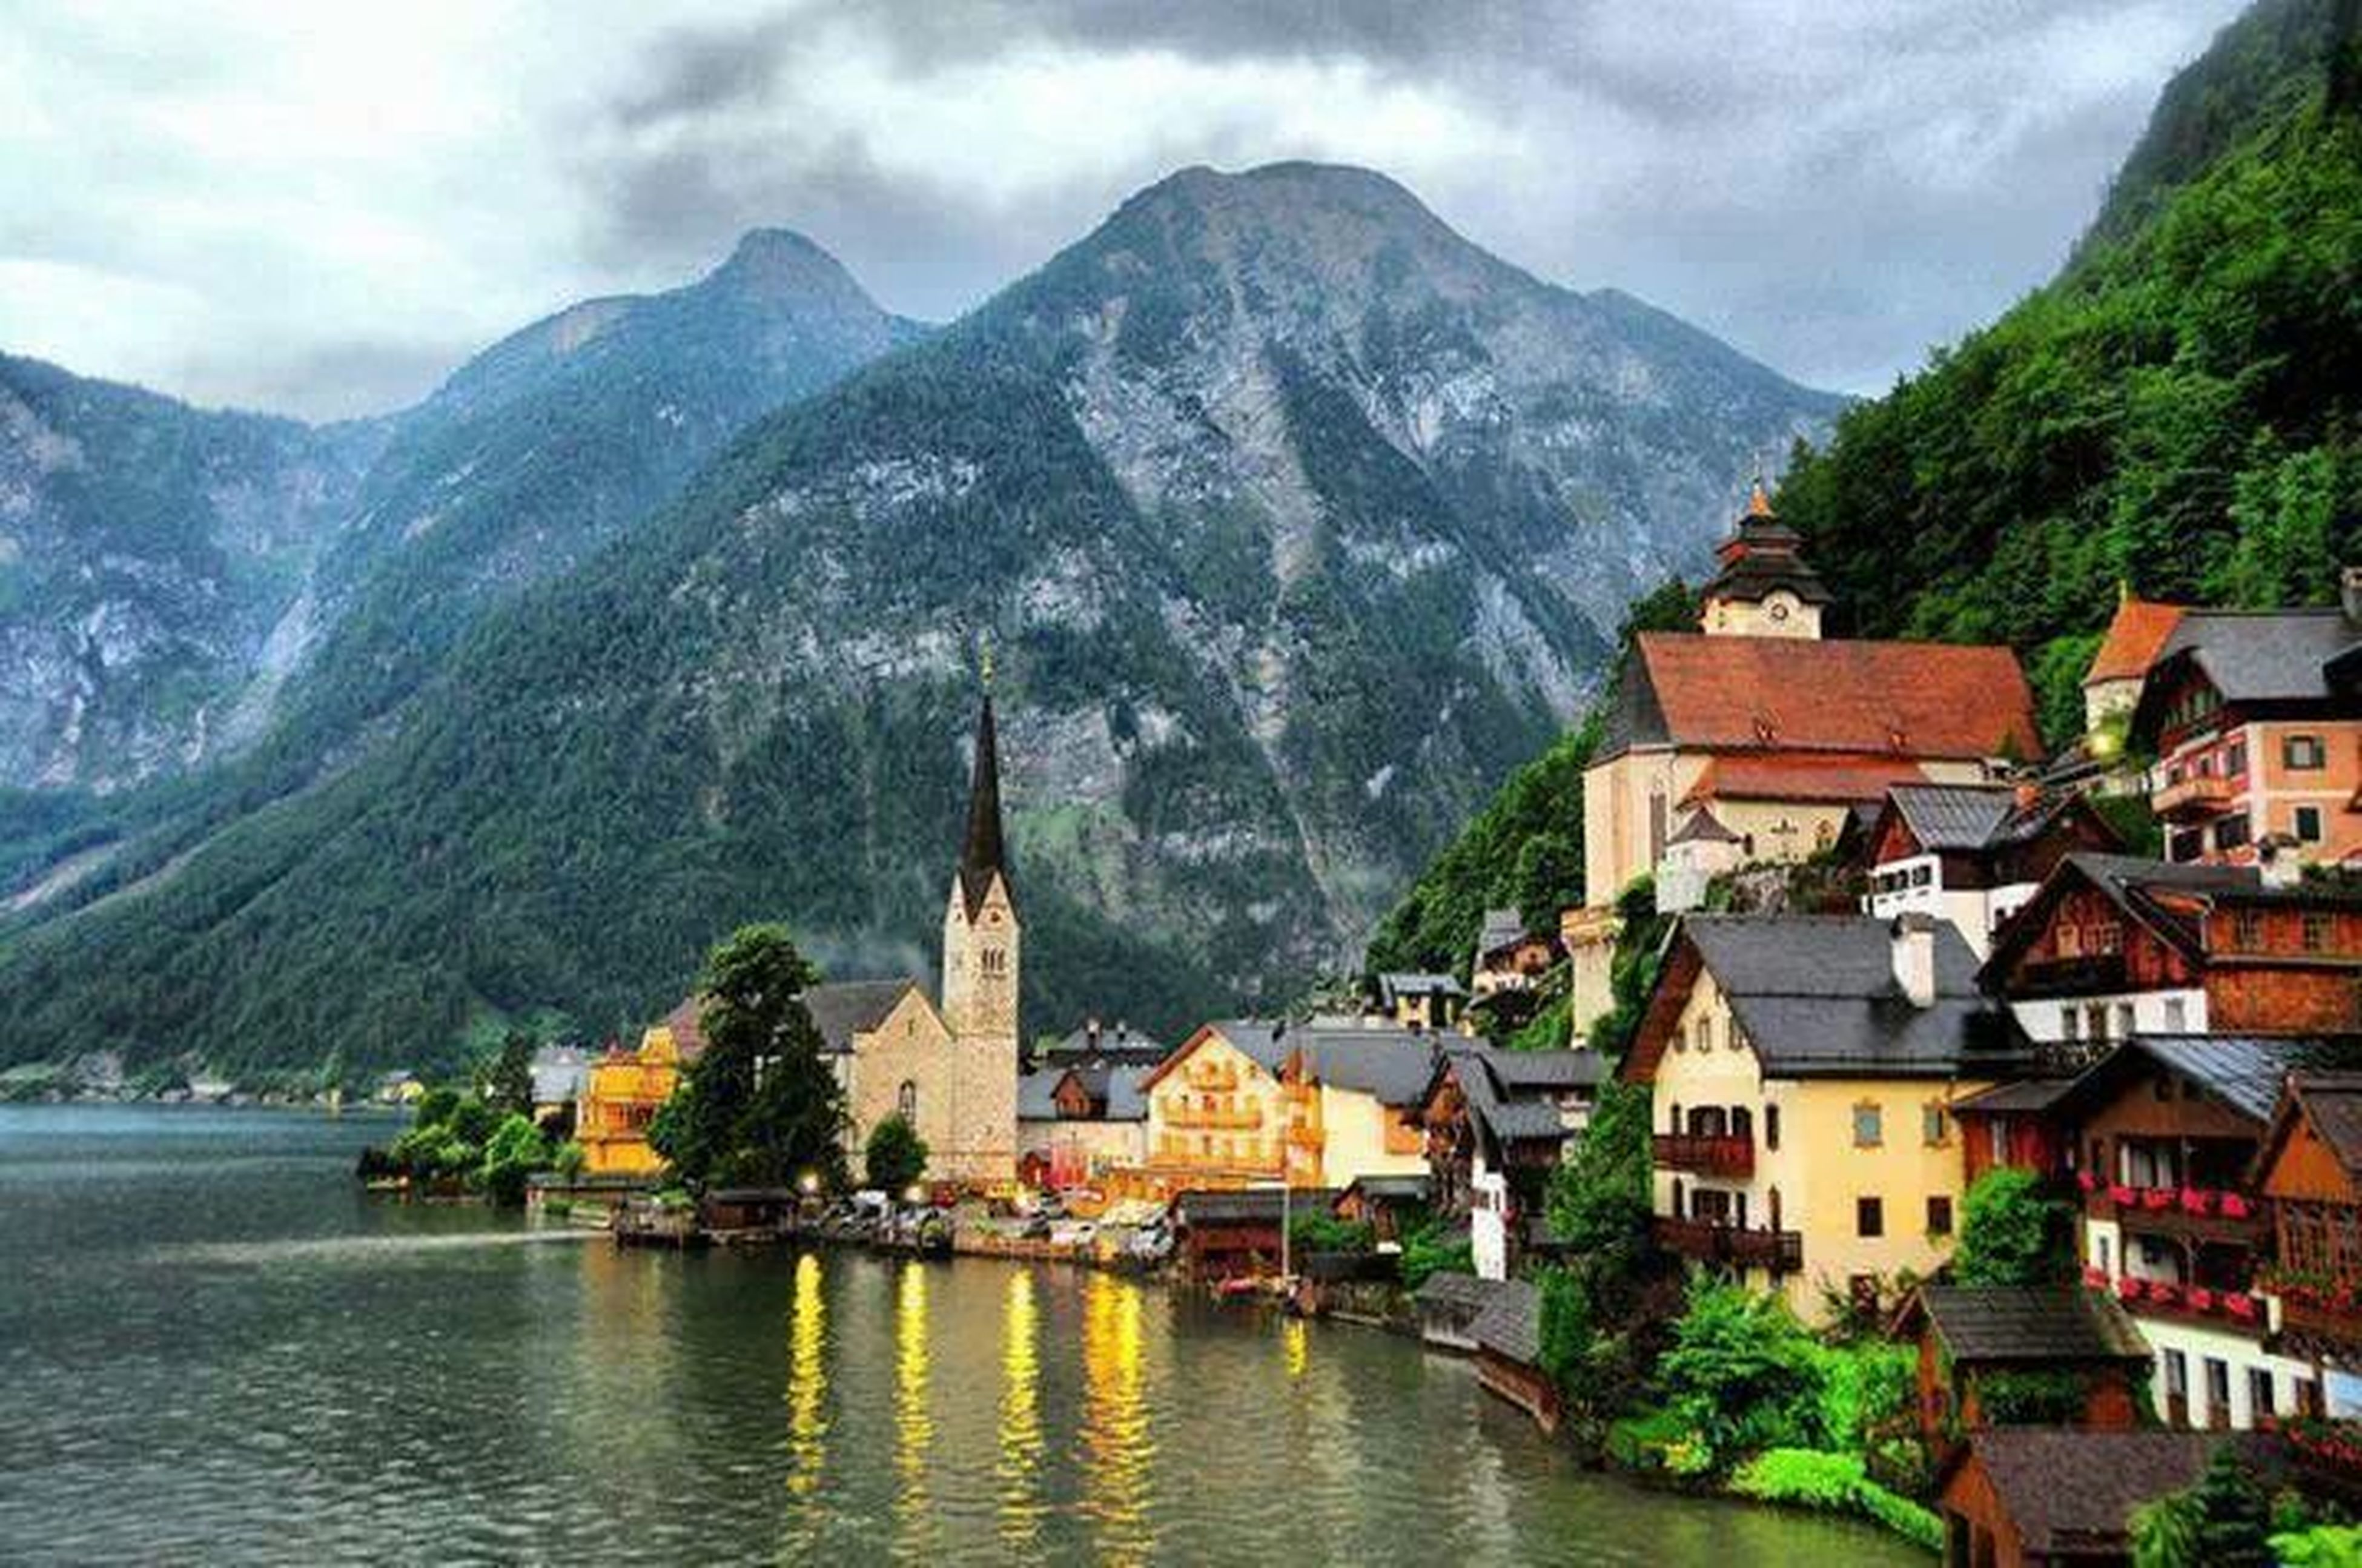 mountain, building exterior, architecture, built structure, mountain range, water, house, tree, waterfront, sky, residential structure, town, river, residential building, scenics, lake, residential district, cloud - sky, nature, beauty in nature